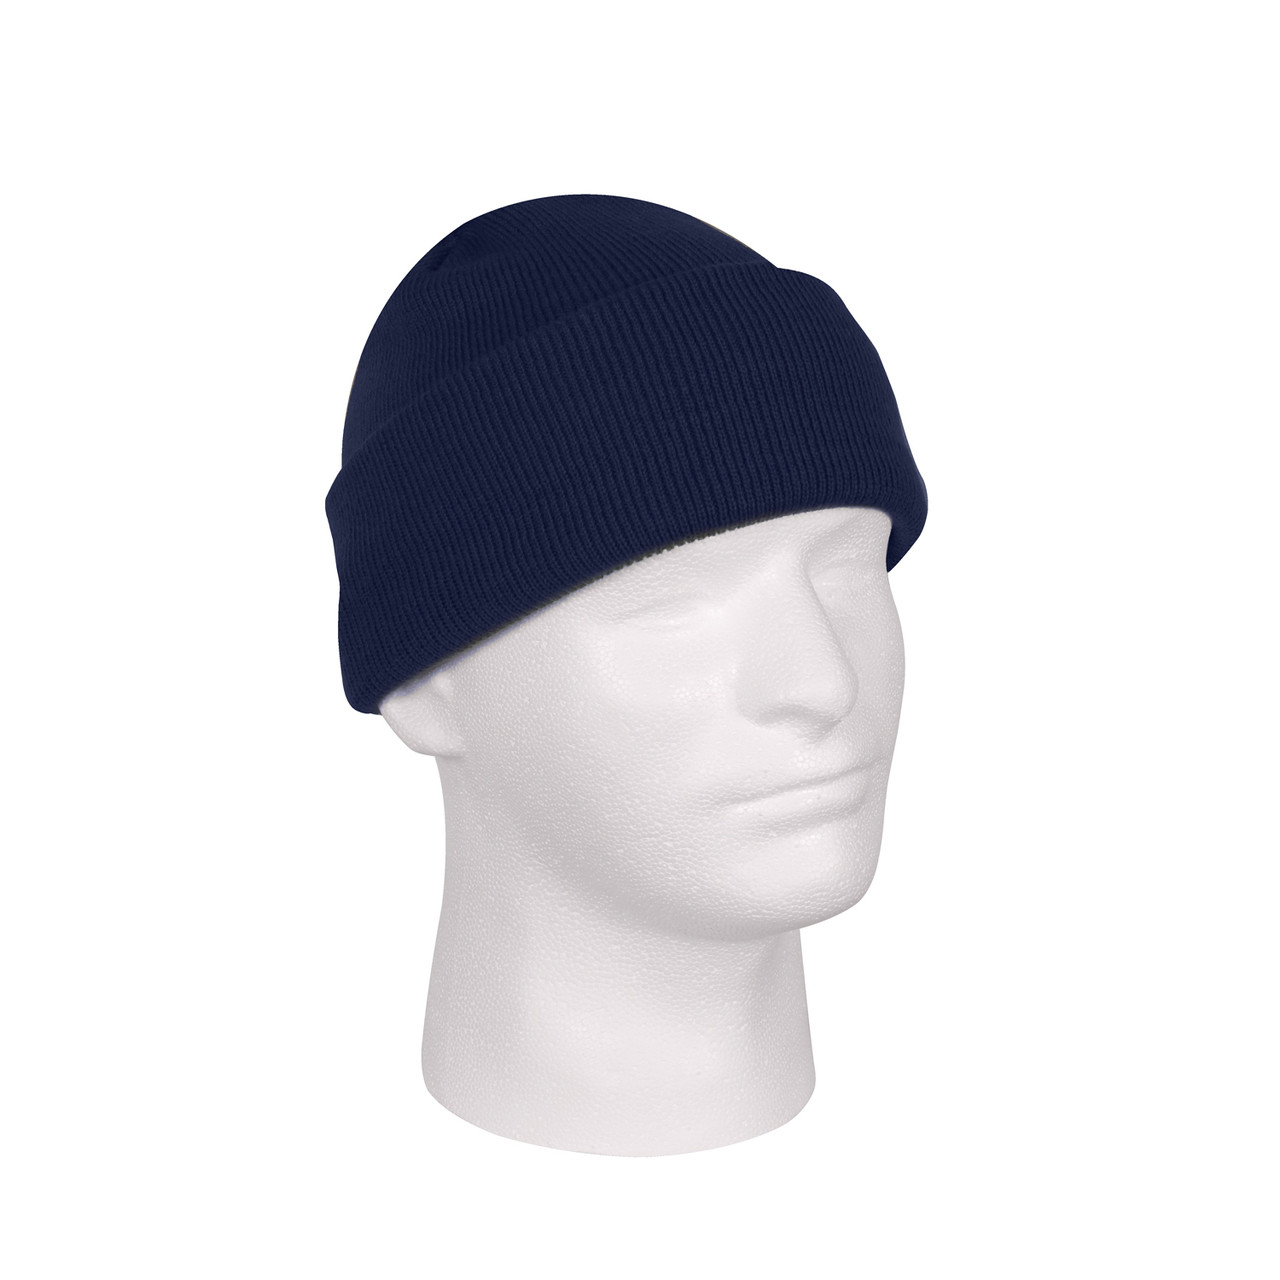 330d5a0becbab7 Shop Navy Blue Deluxe Knit Watch Caps - Fatigues Army Navy Gear